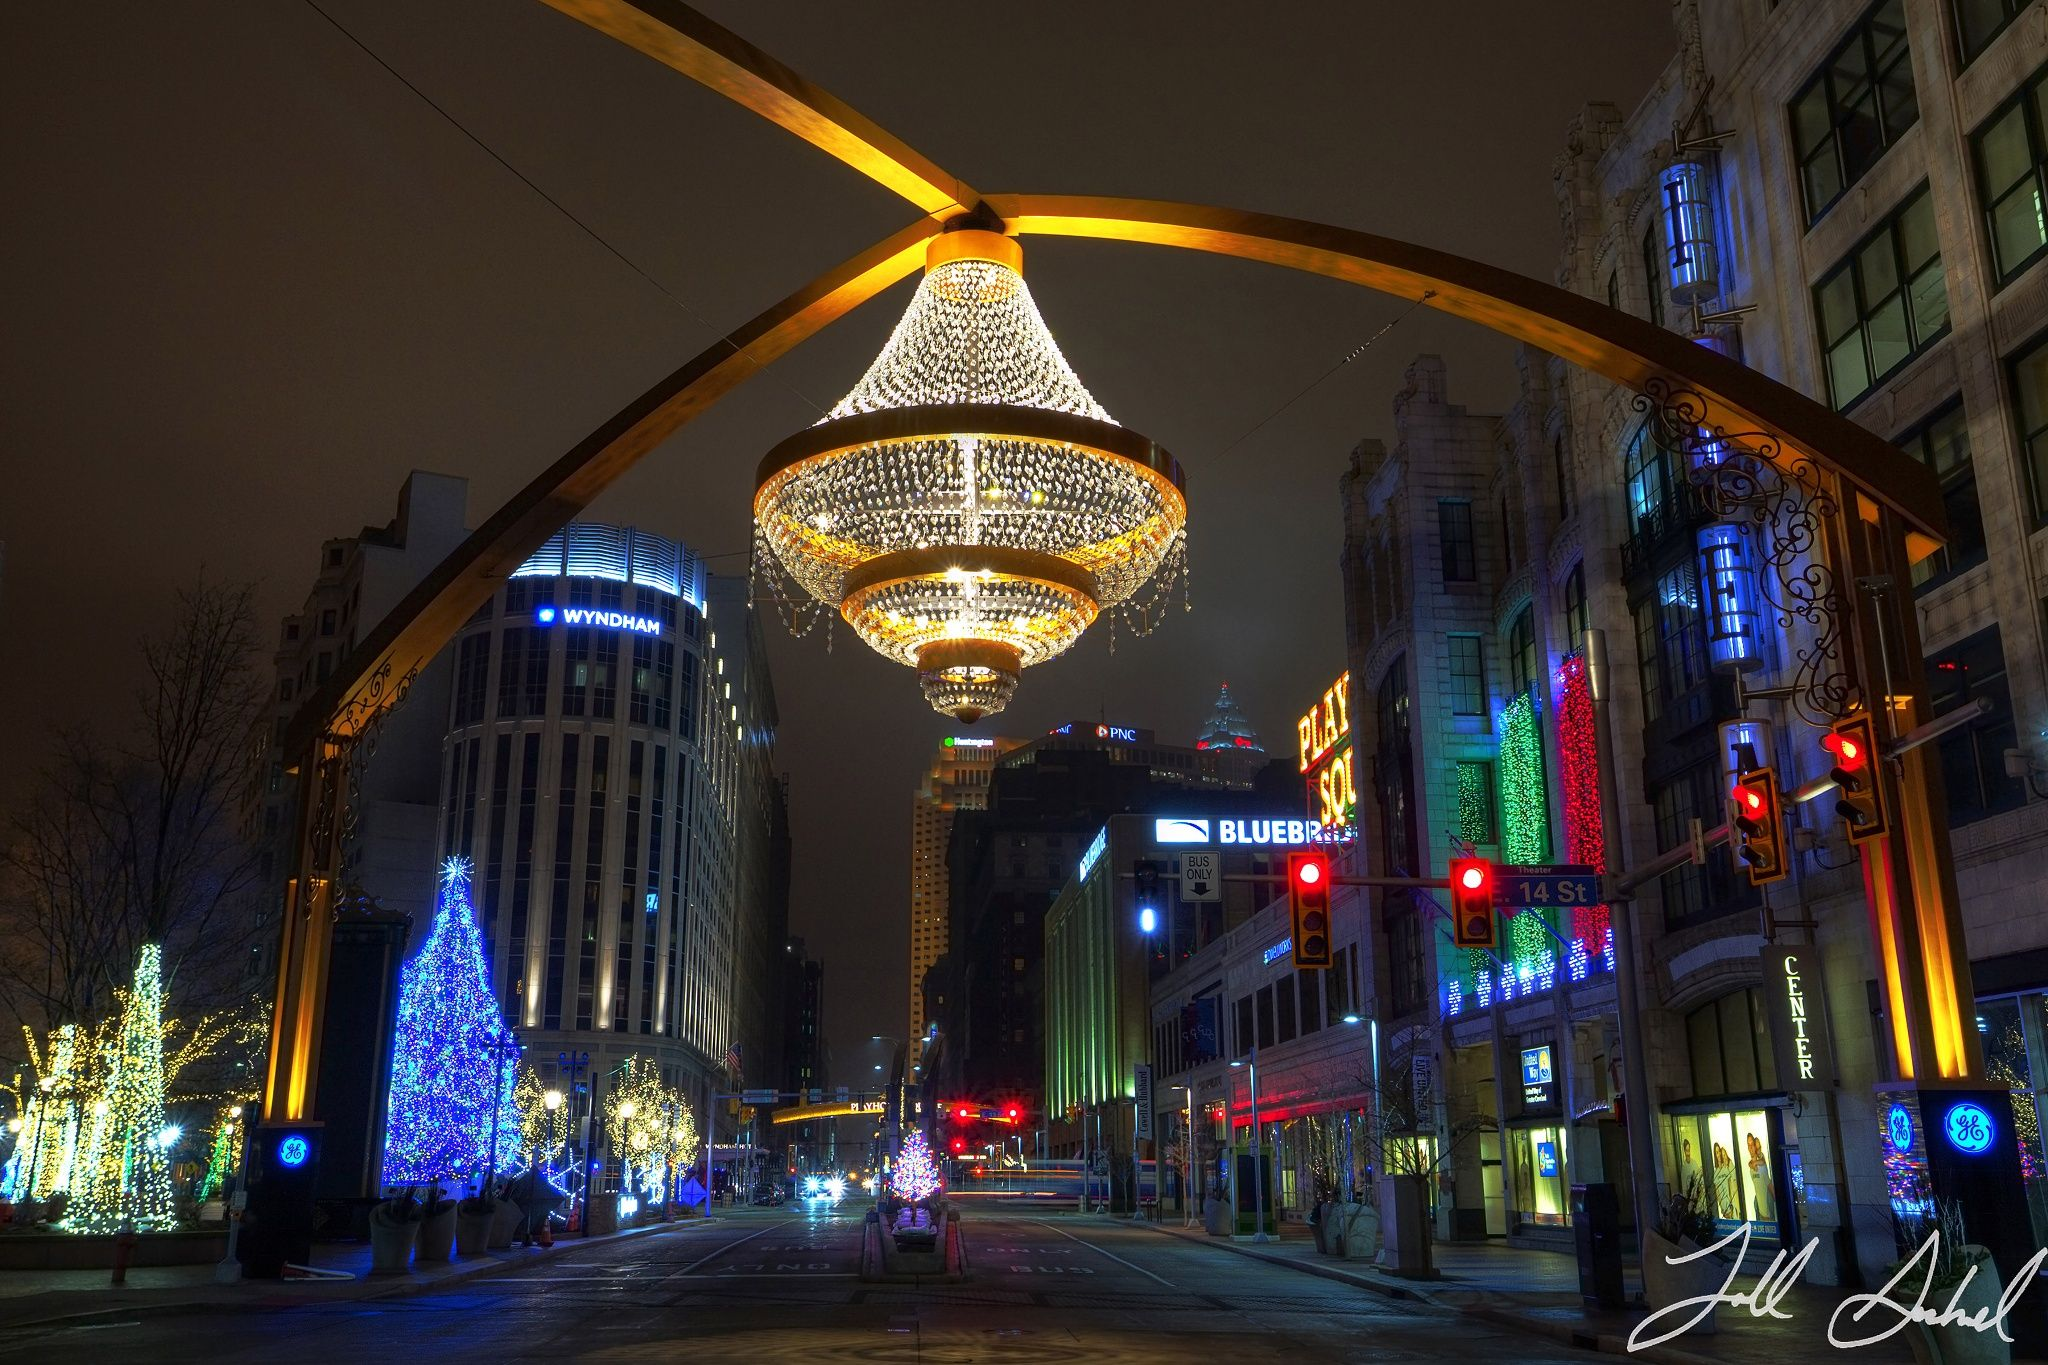 The GE Chandelier Cleveland Ohio by Todd Sechel on 500px